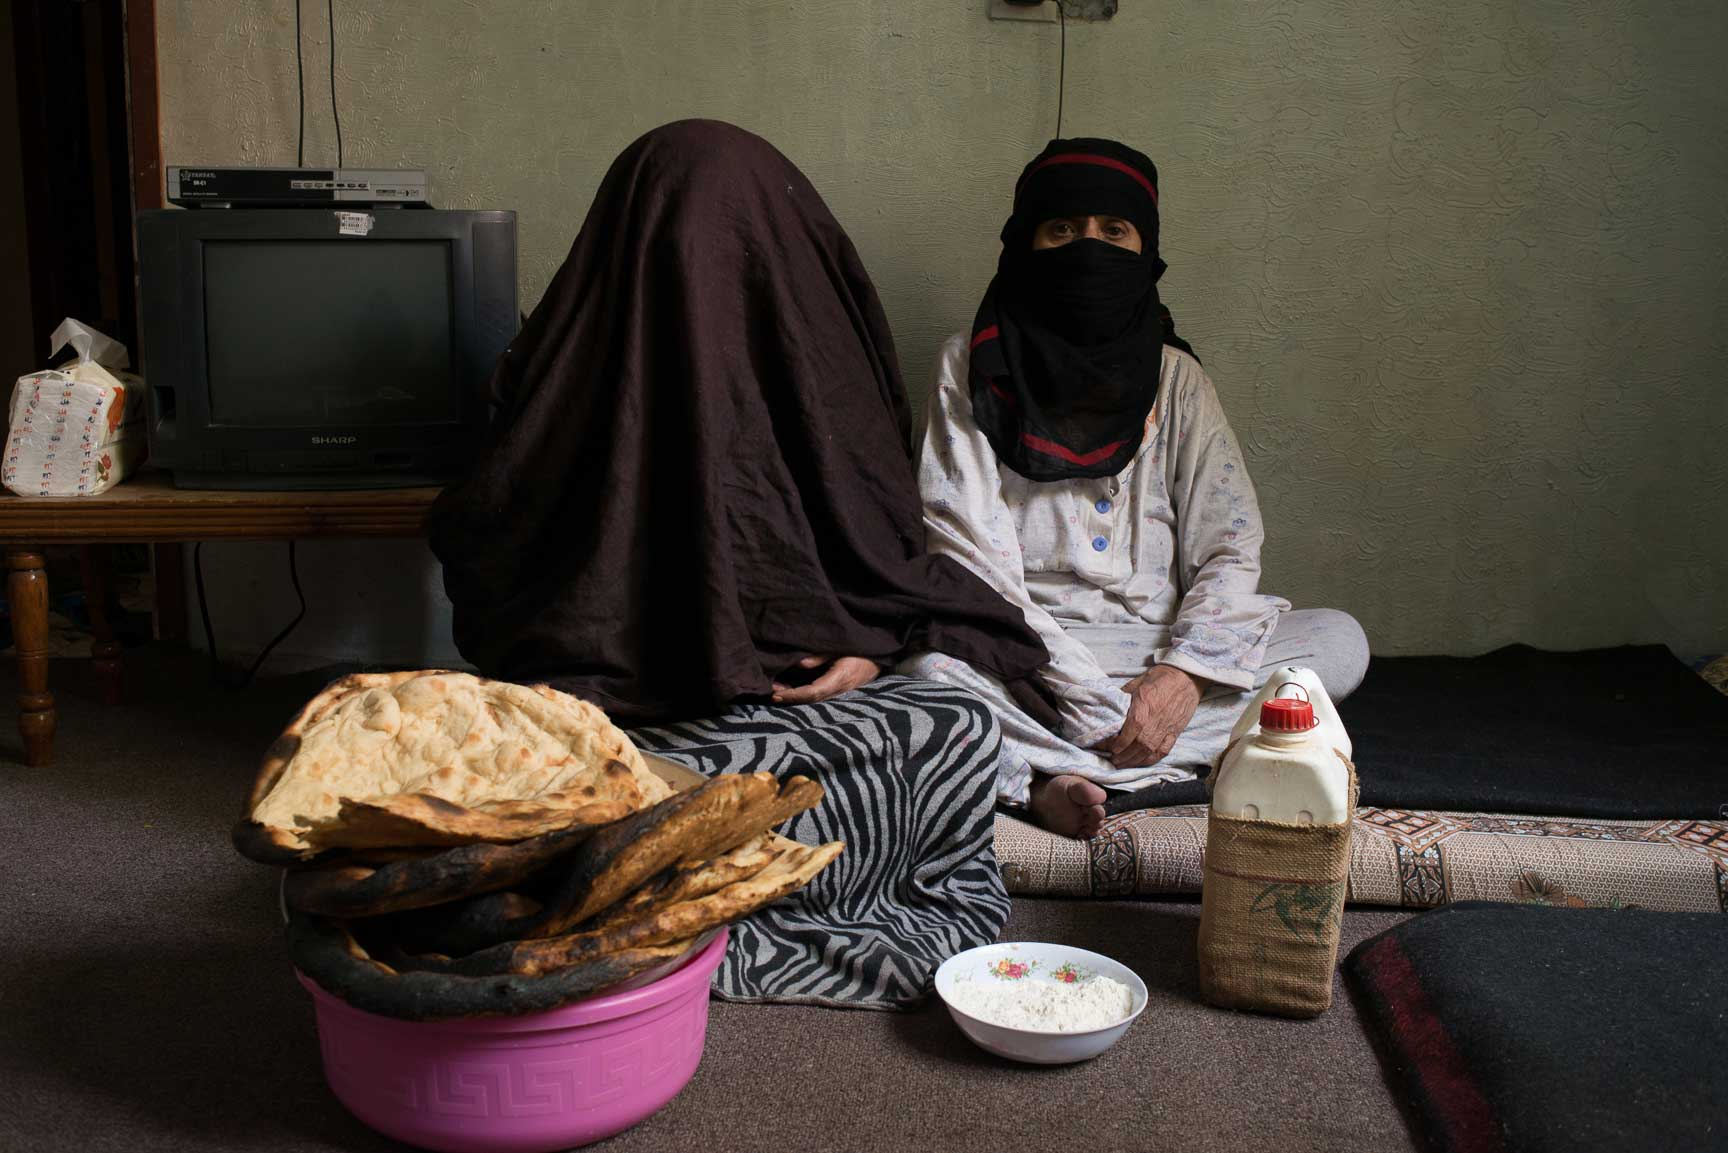 Yemeni women displaced from Sa'ada by airstrikes, sit for a portrait in the home of a Yemeni family that is hosting them on June 10, 2015 in Sana'a, Yemen. A young boy in their family has leukemia, and three men from their family shared a single motorcycle for the eight our ride to Sana'a from Sa'daa.